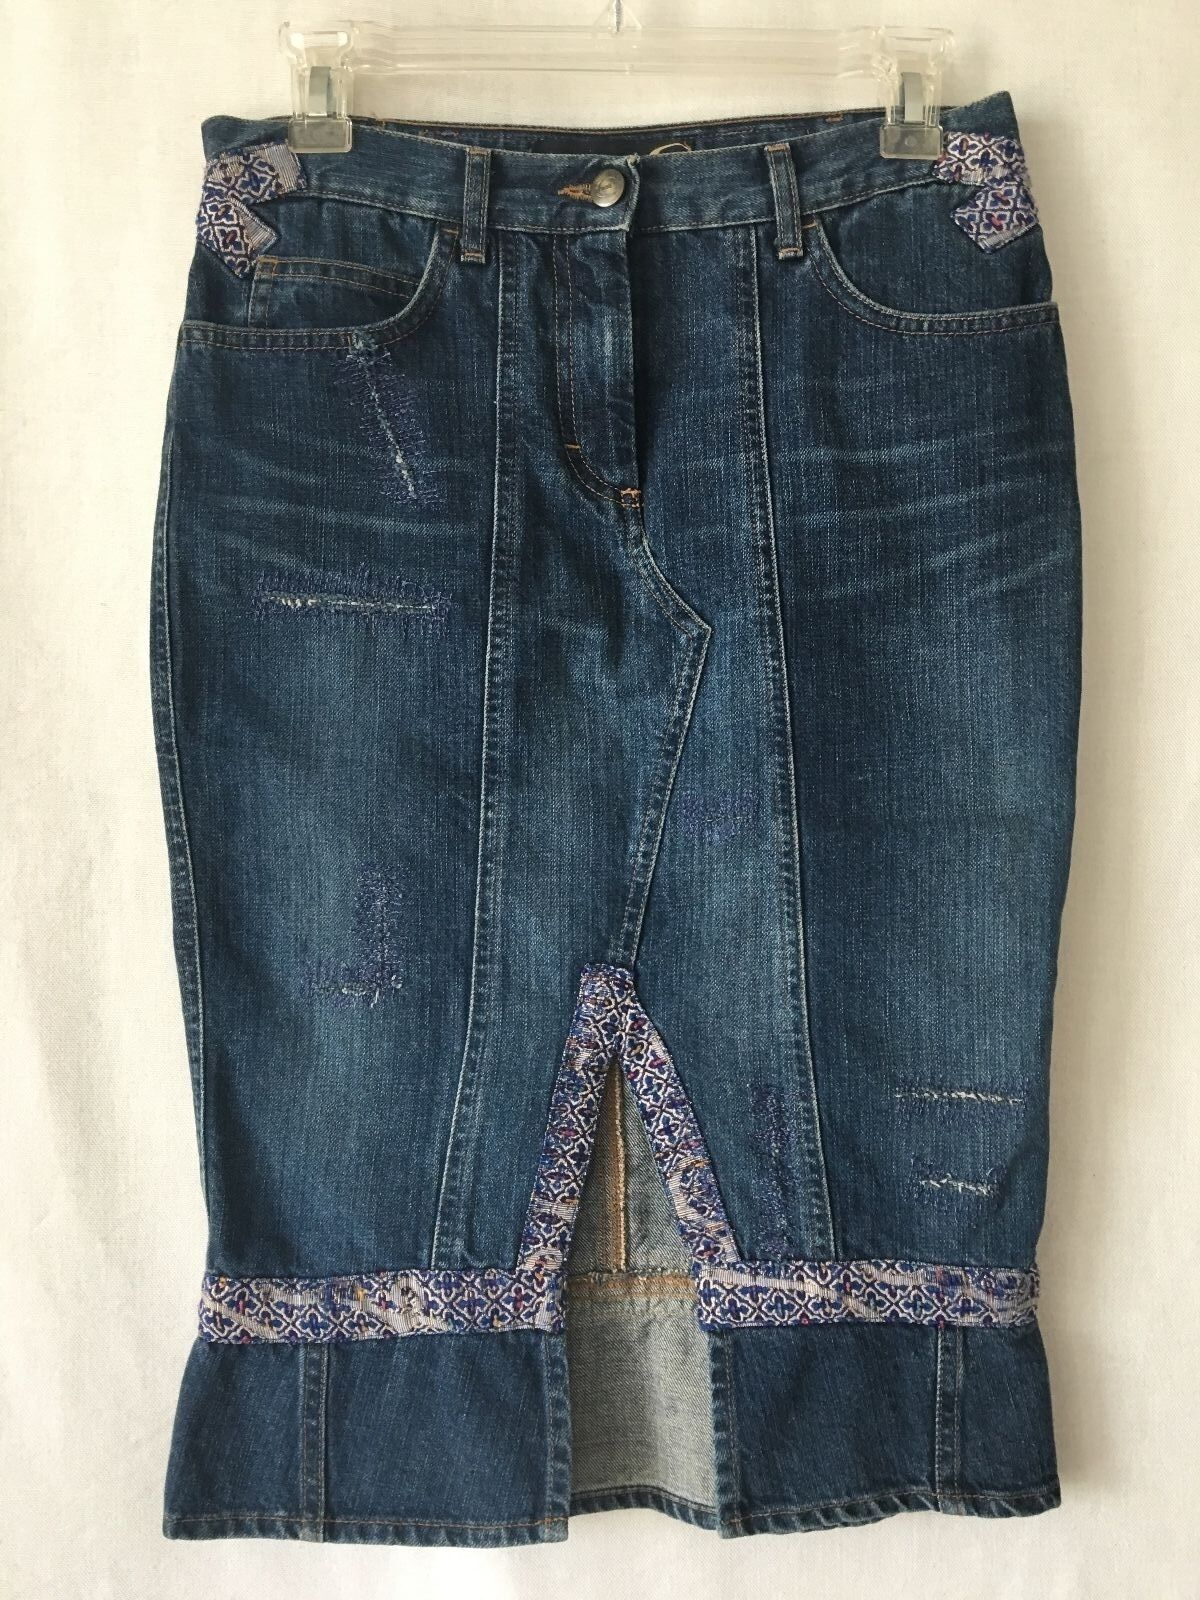 JUST CAVALLI bluee Distressed Trim Detail Denim Skirt. SZ 40. Waist 30.0